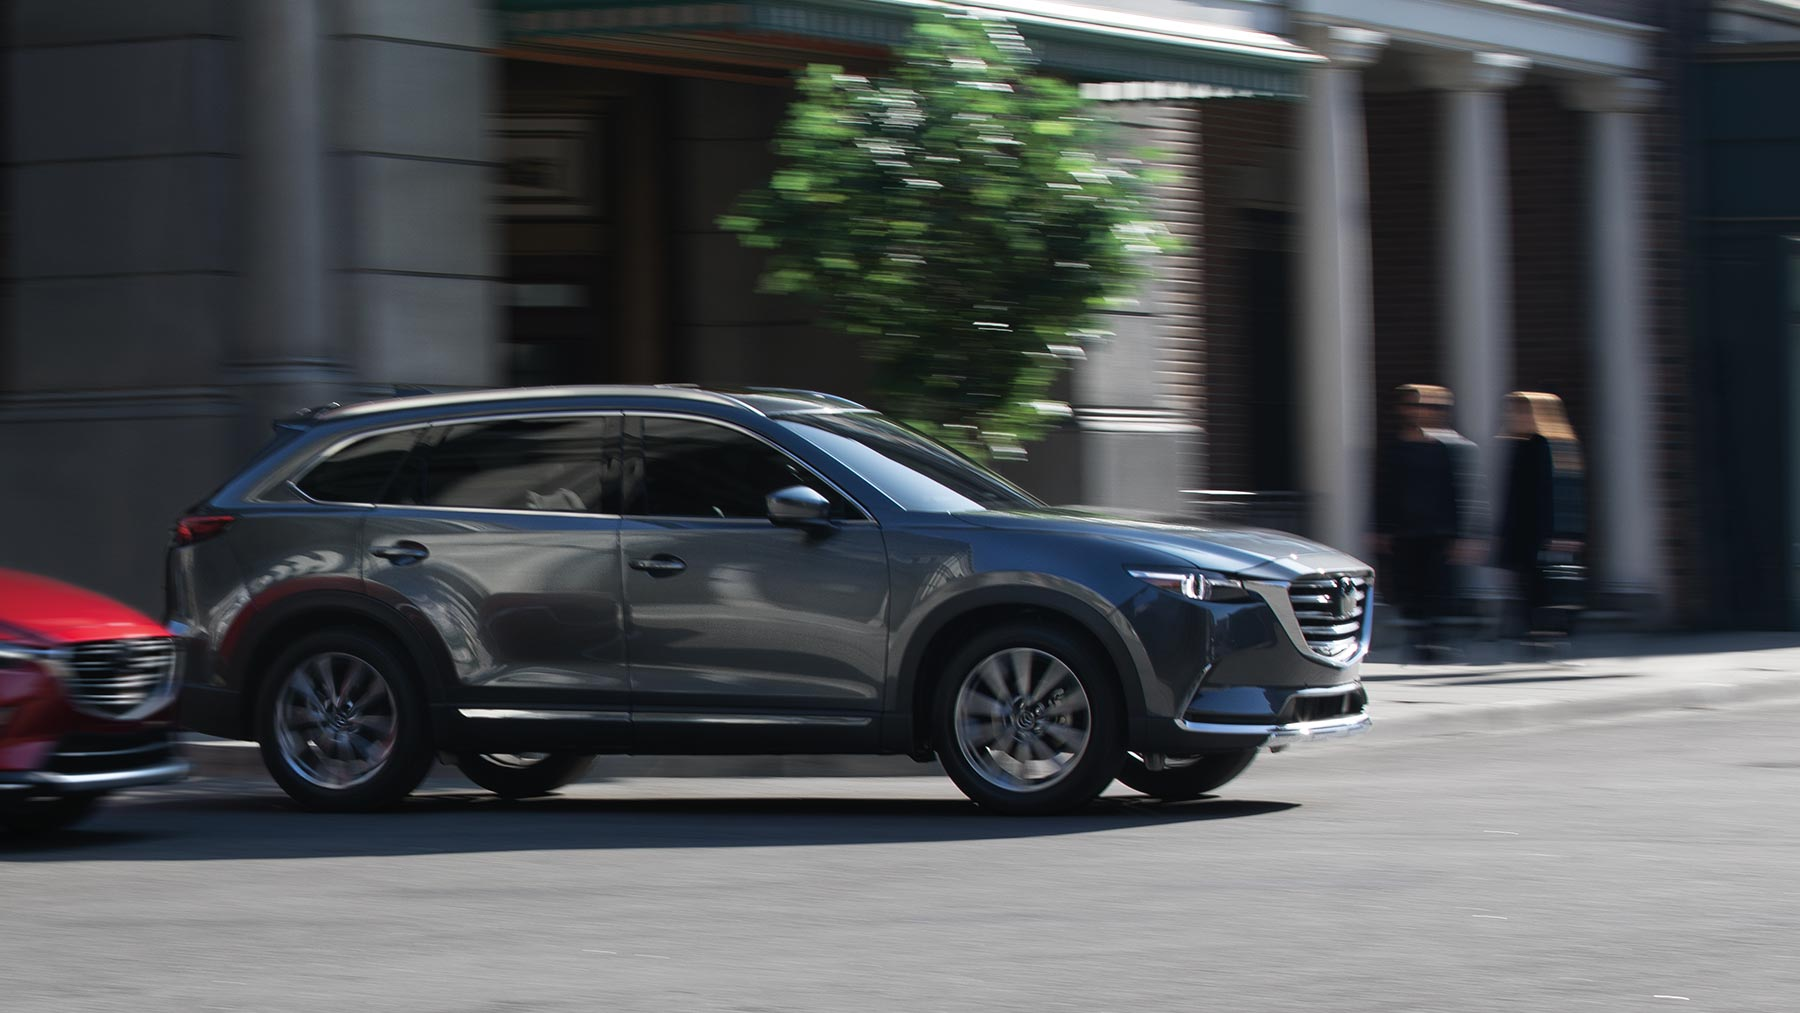 2019 Mazda CX-9 for Sale near Angleton, TX